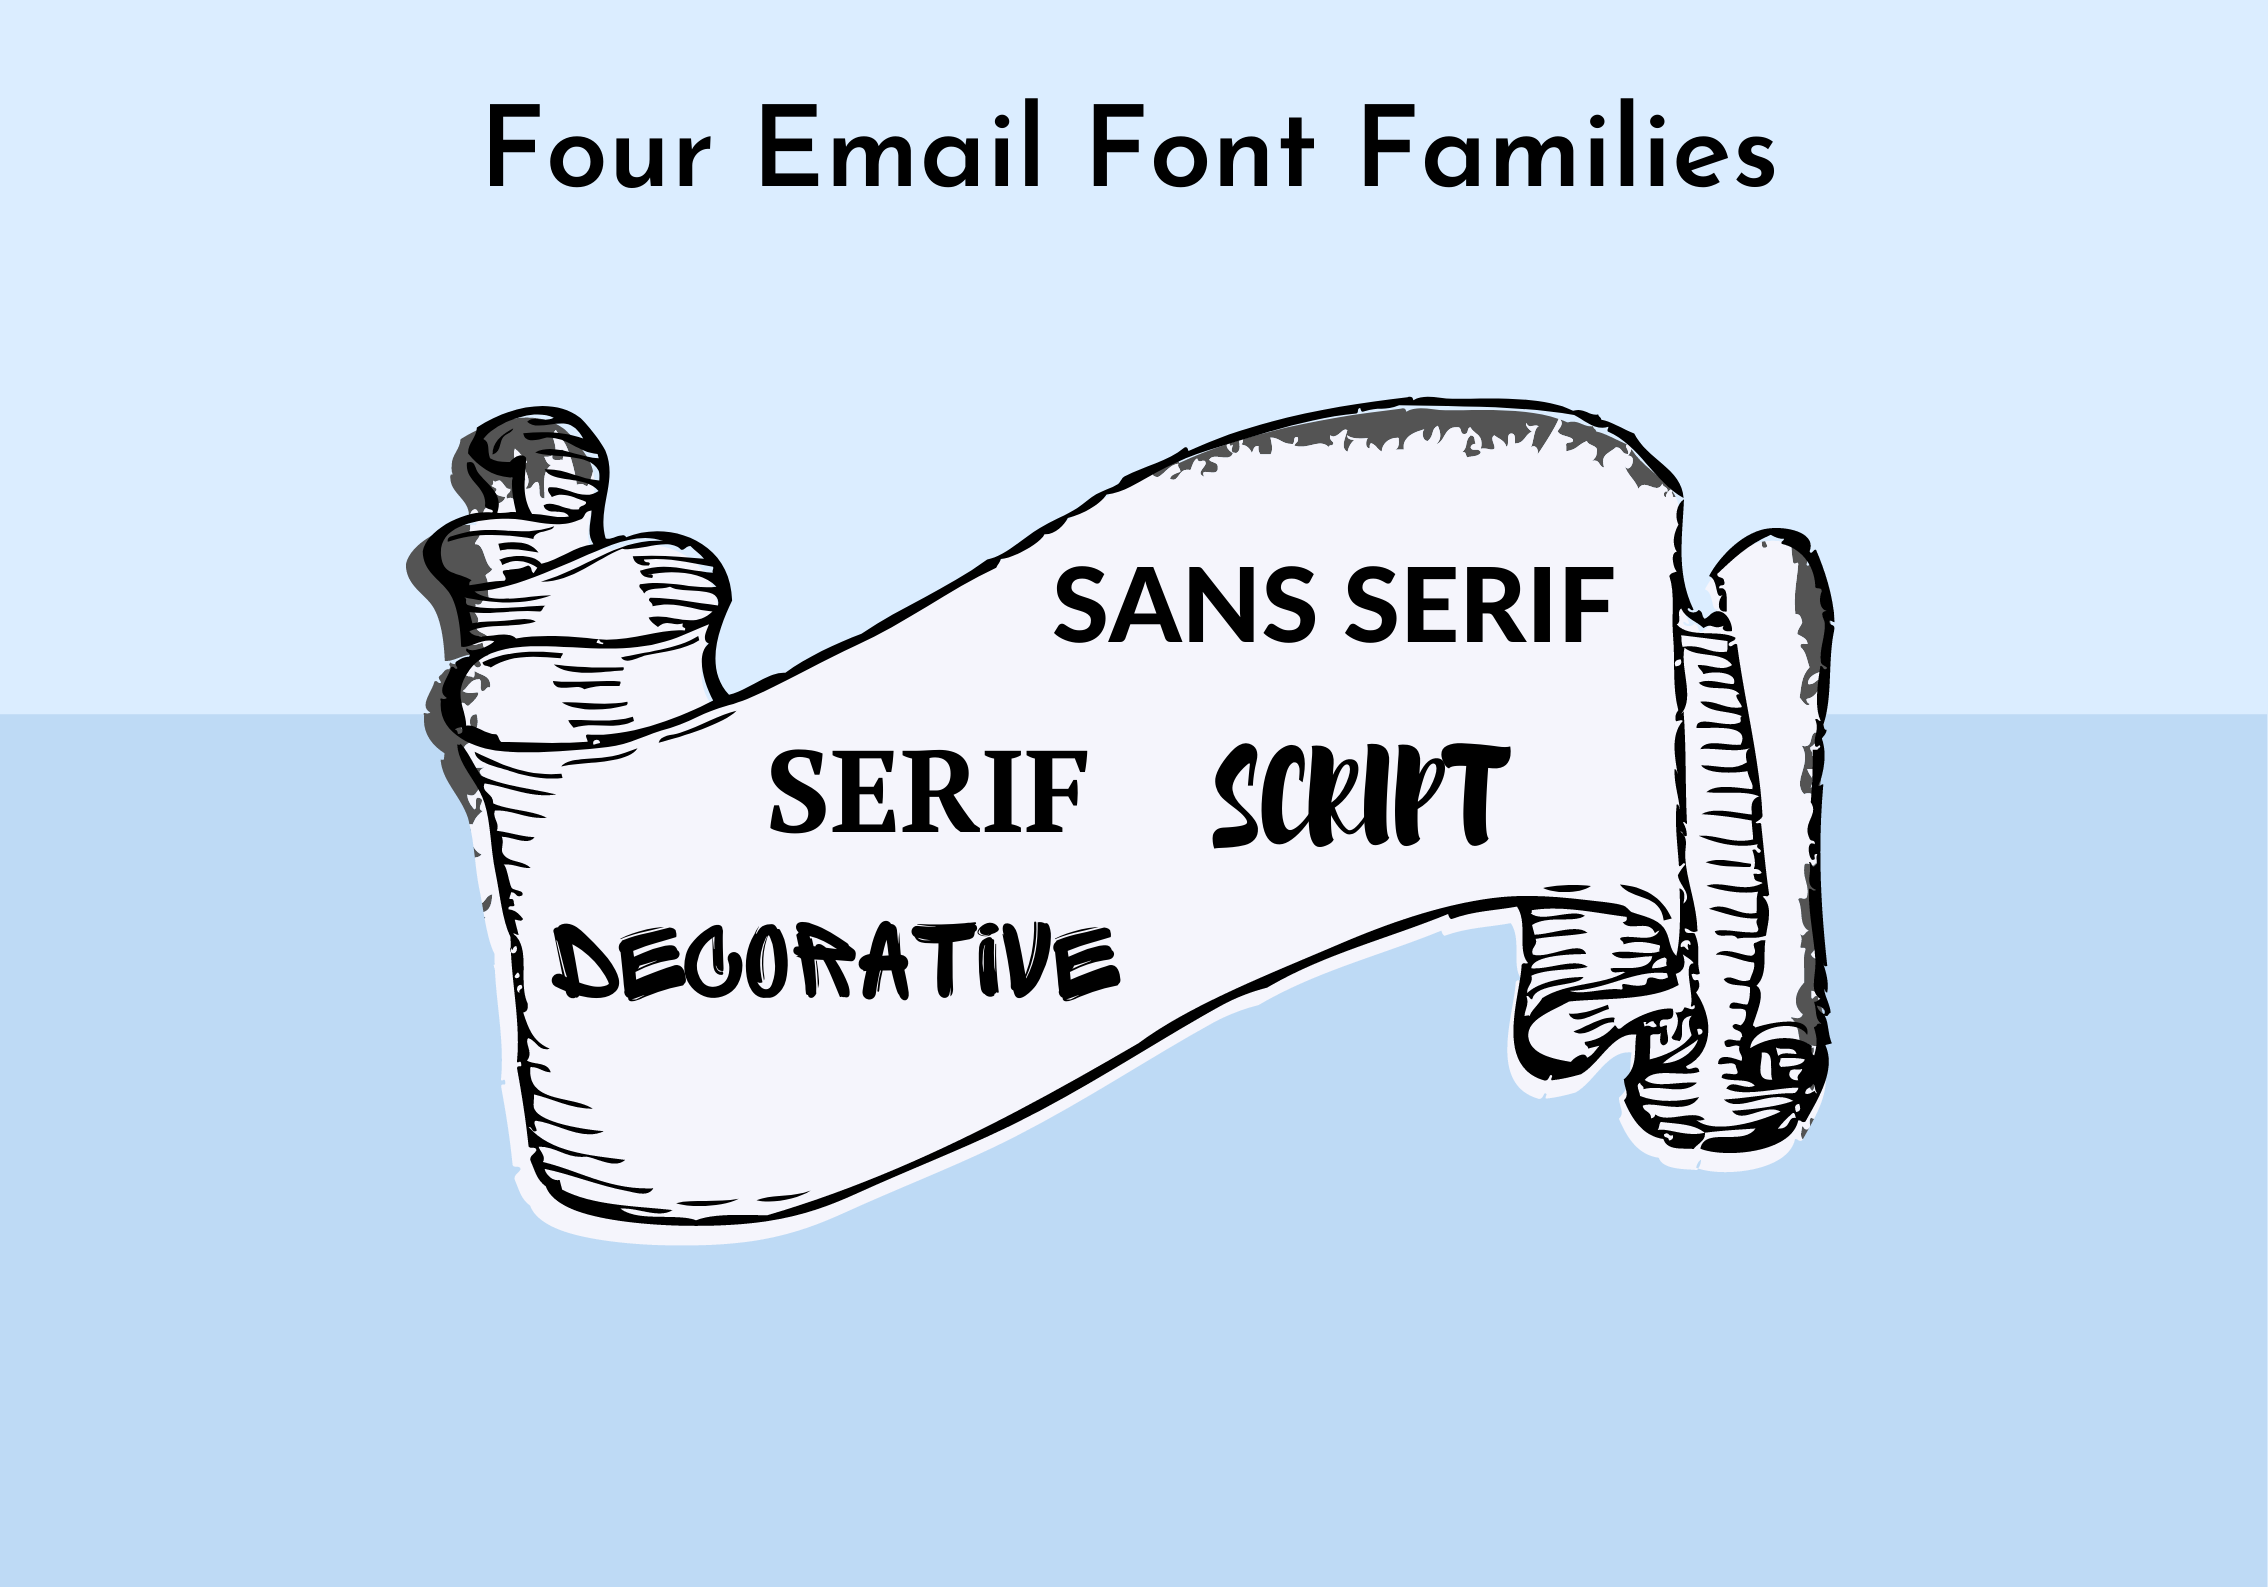 Four email font families